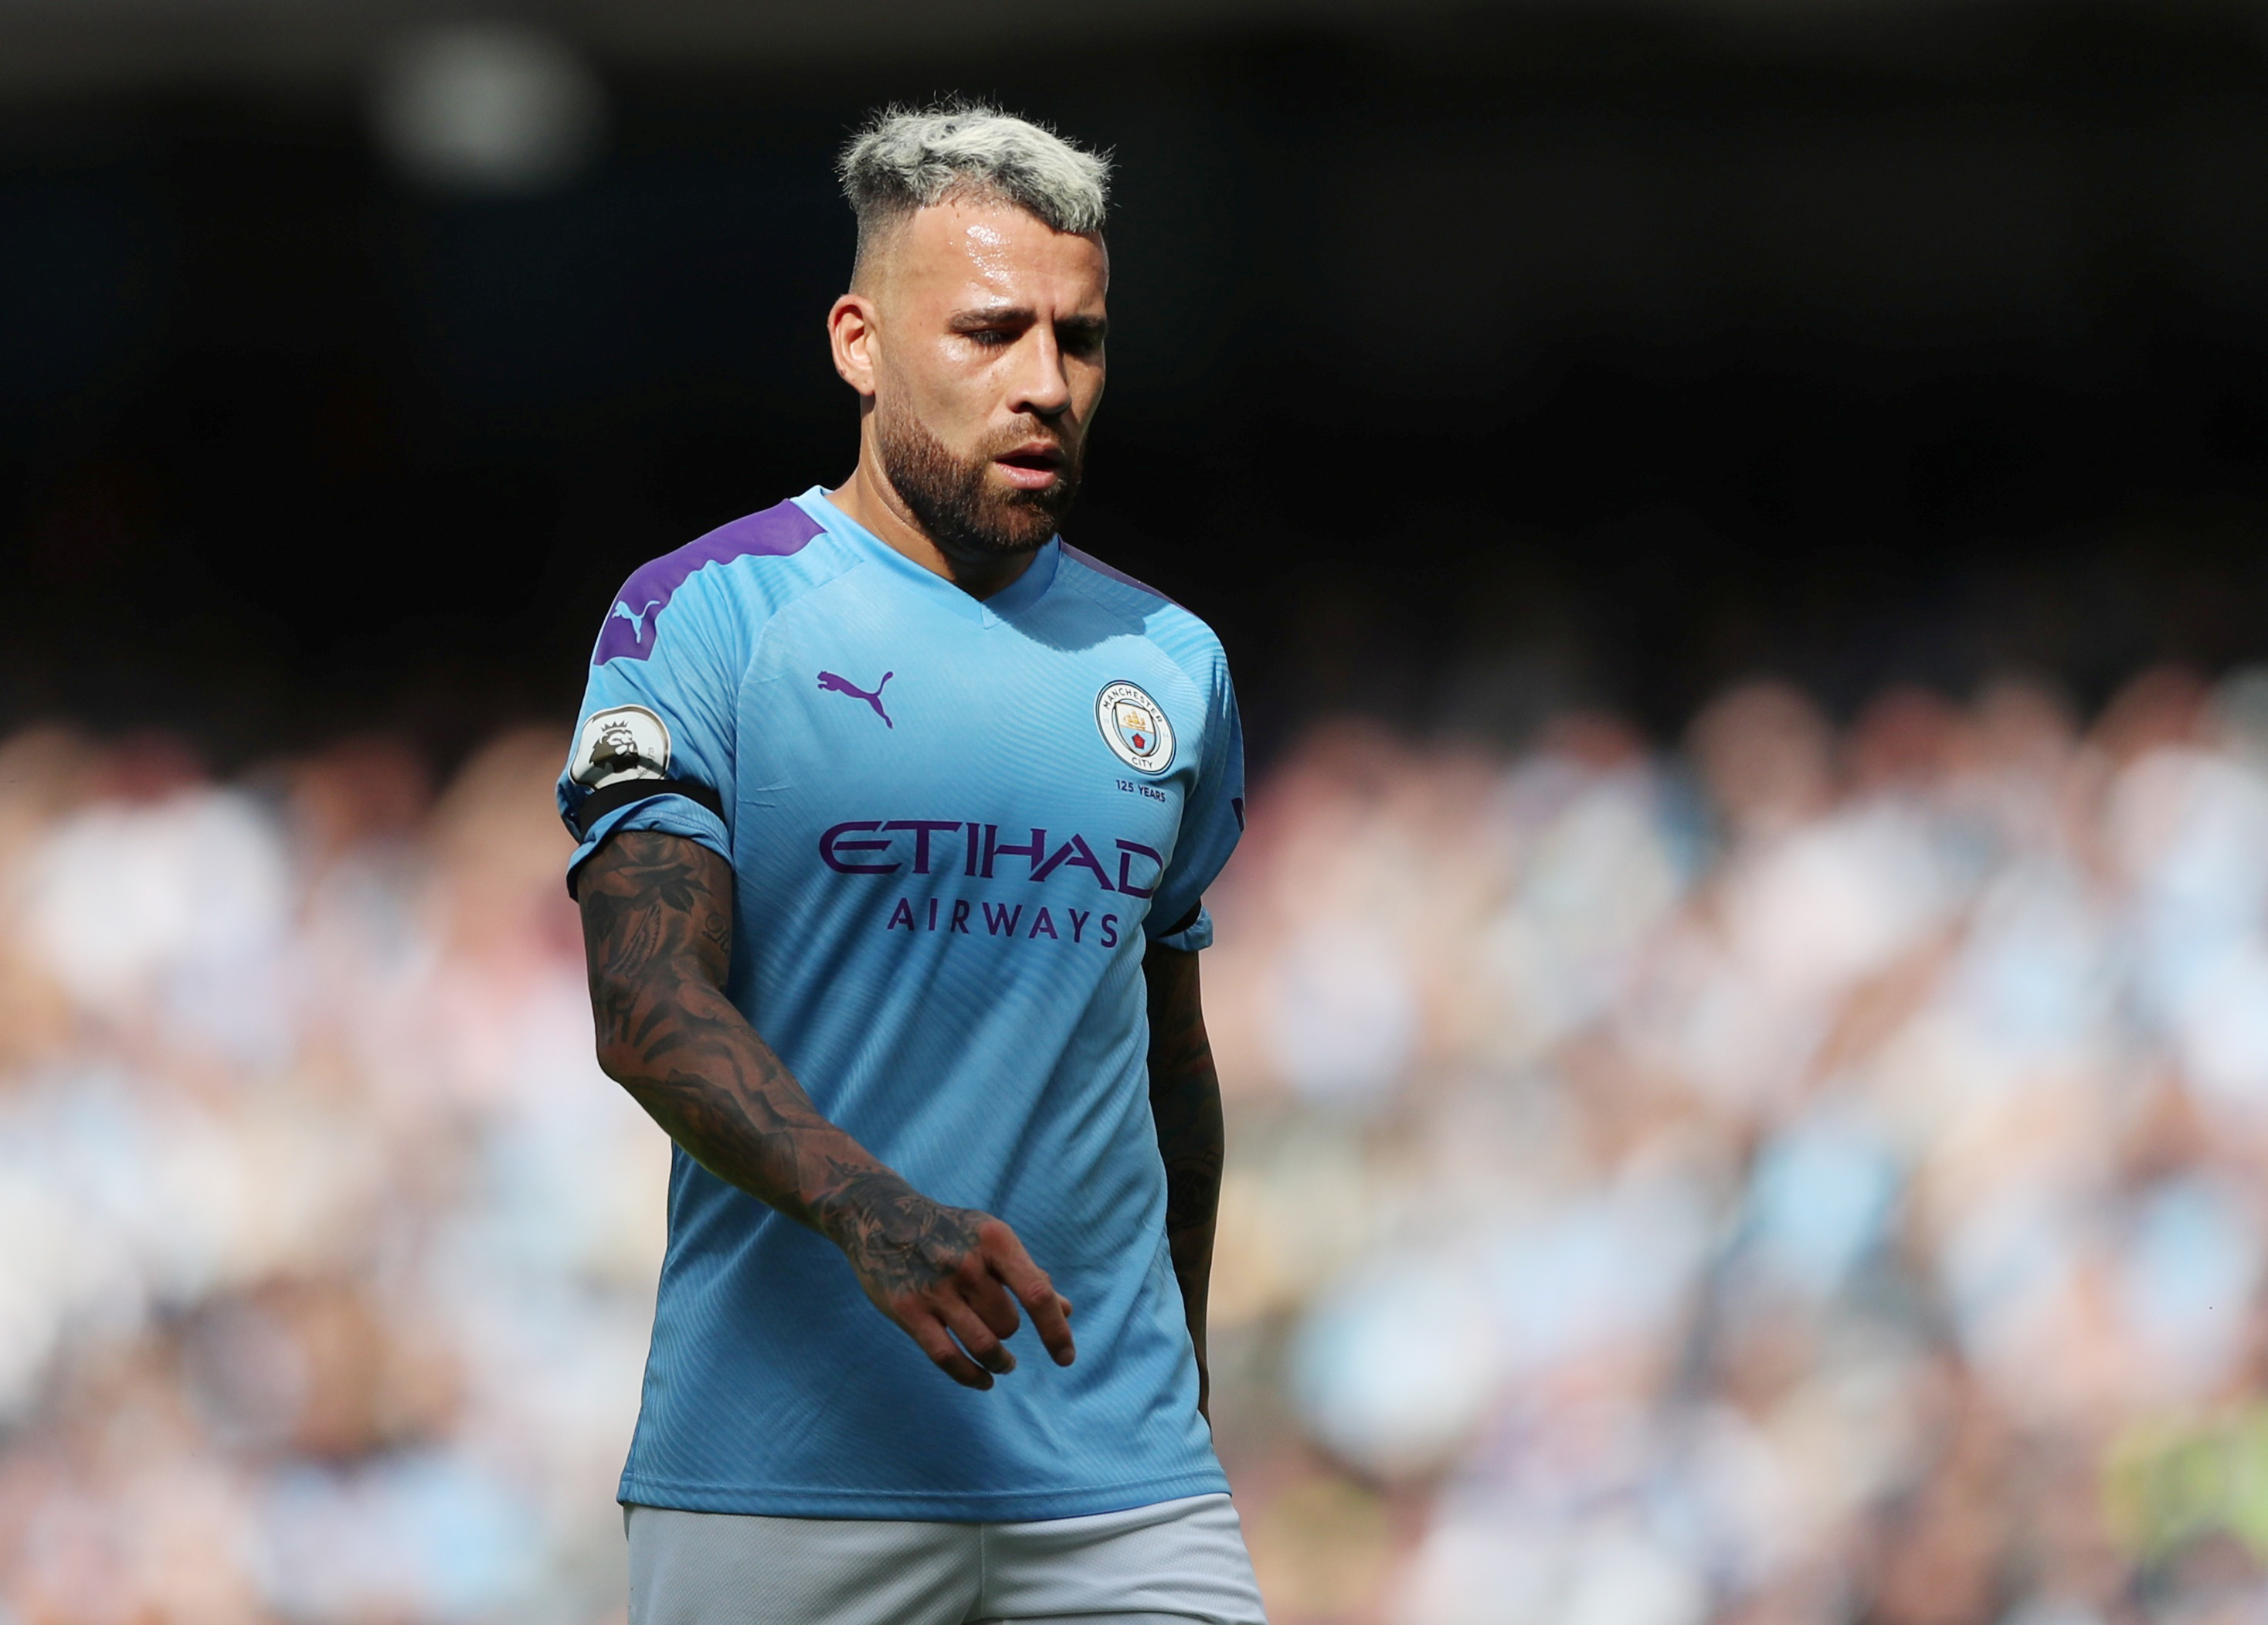 Sky Sports pundits shoot across their doubts on Otamendi-Stones